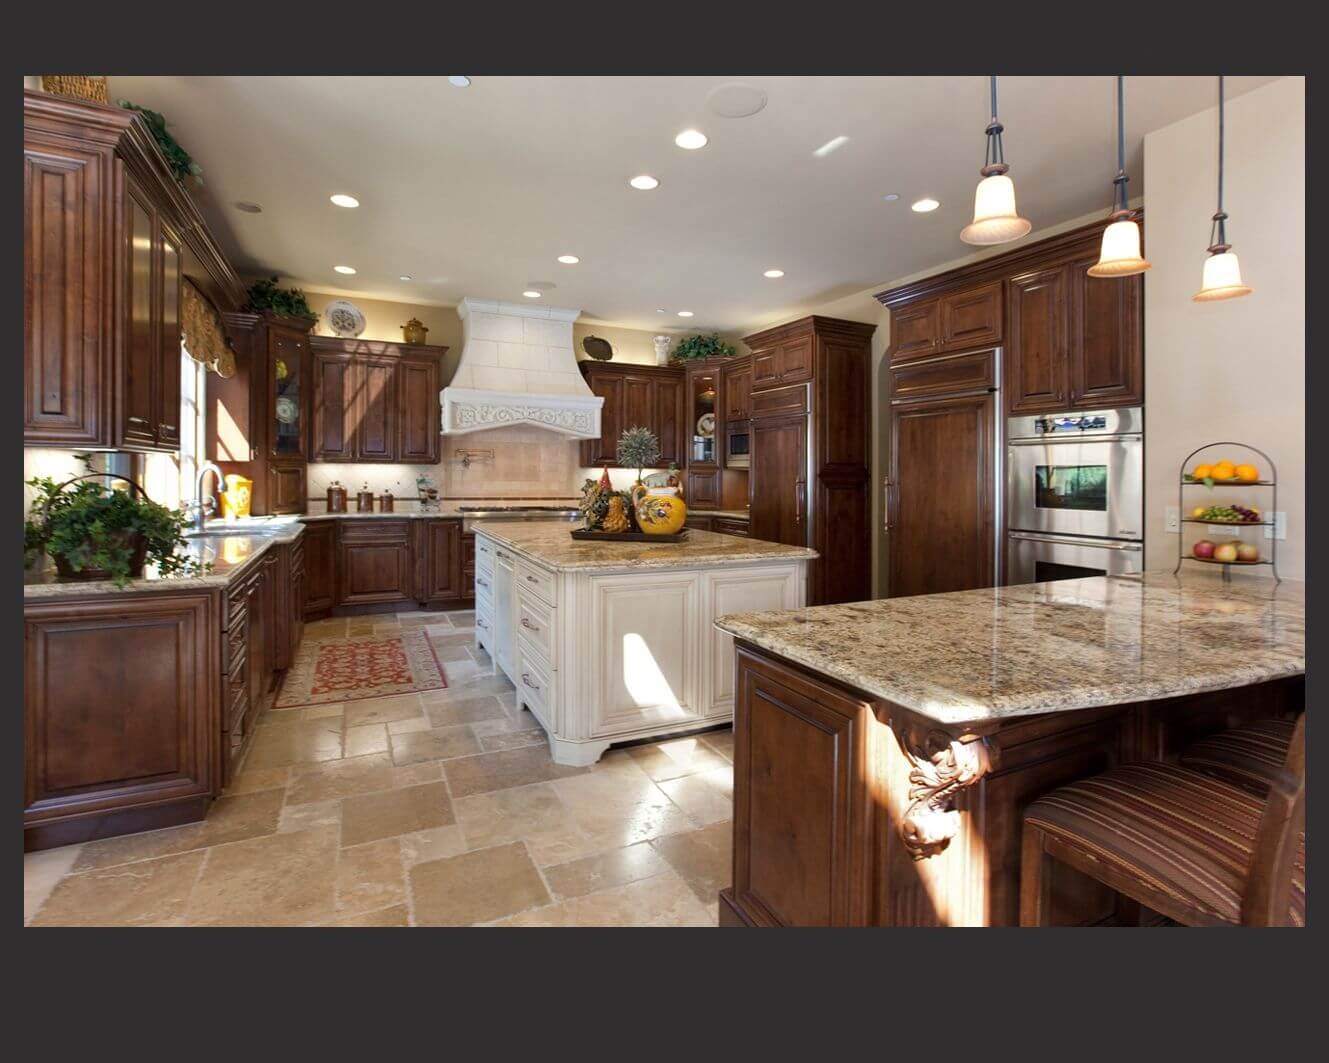 Merveilleux Richly Detailed U Shaped Kitchen Centers Dark Wood Cabinetry Around Large,  White Painted Wood